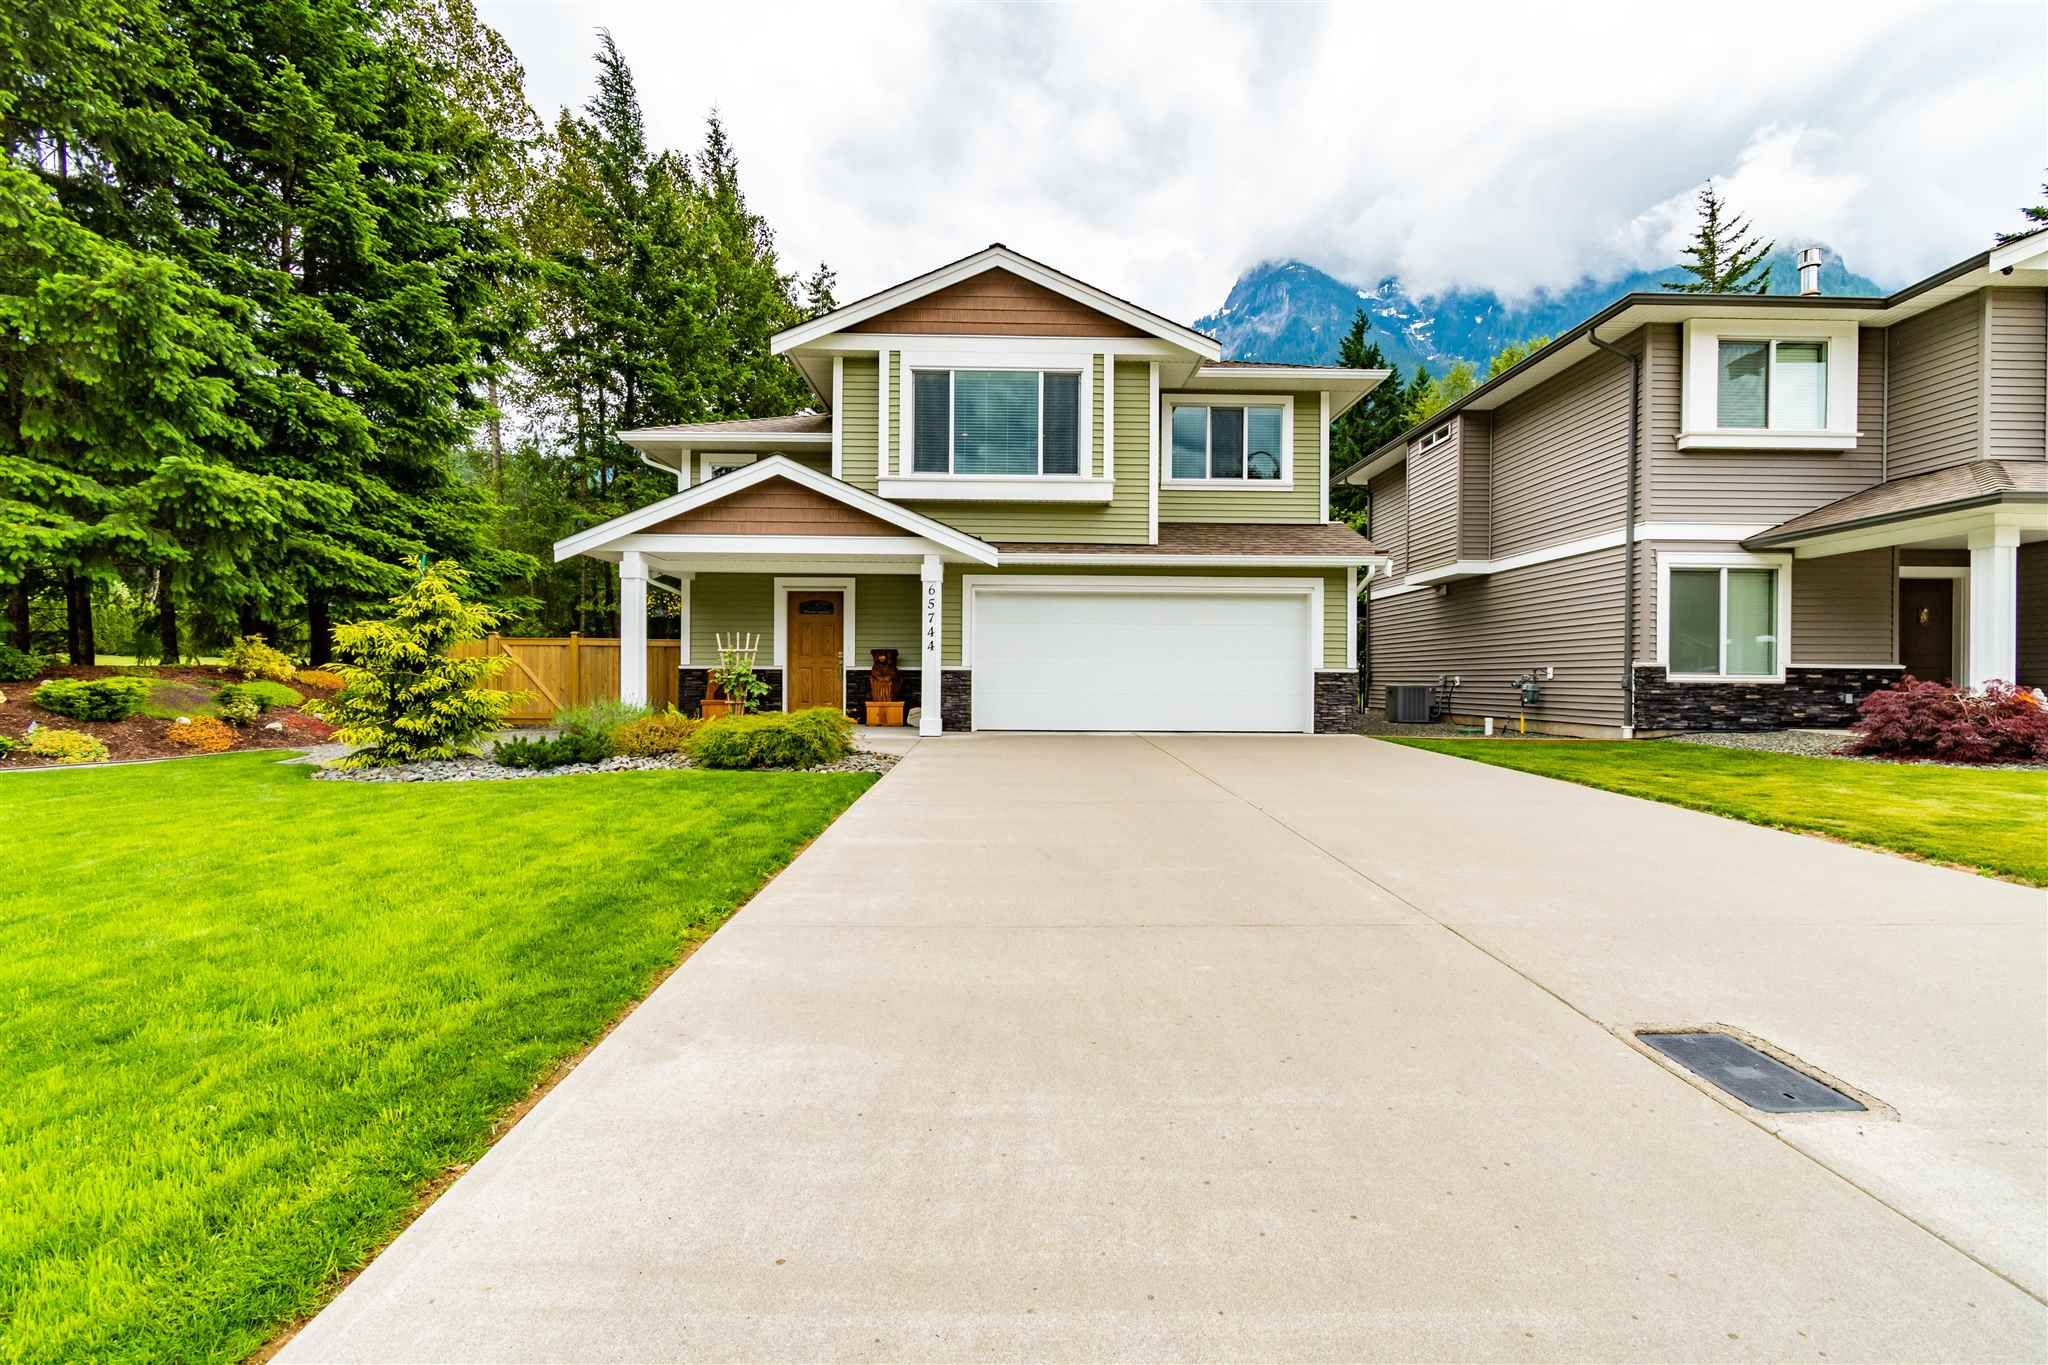 """Main Photo: 65744 VALLEY VIEW Place in Hope: Hope Kawkawa Lake House for sale in """"V0X 1L1"""" : MLS®# R2594069"""